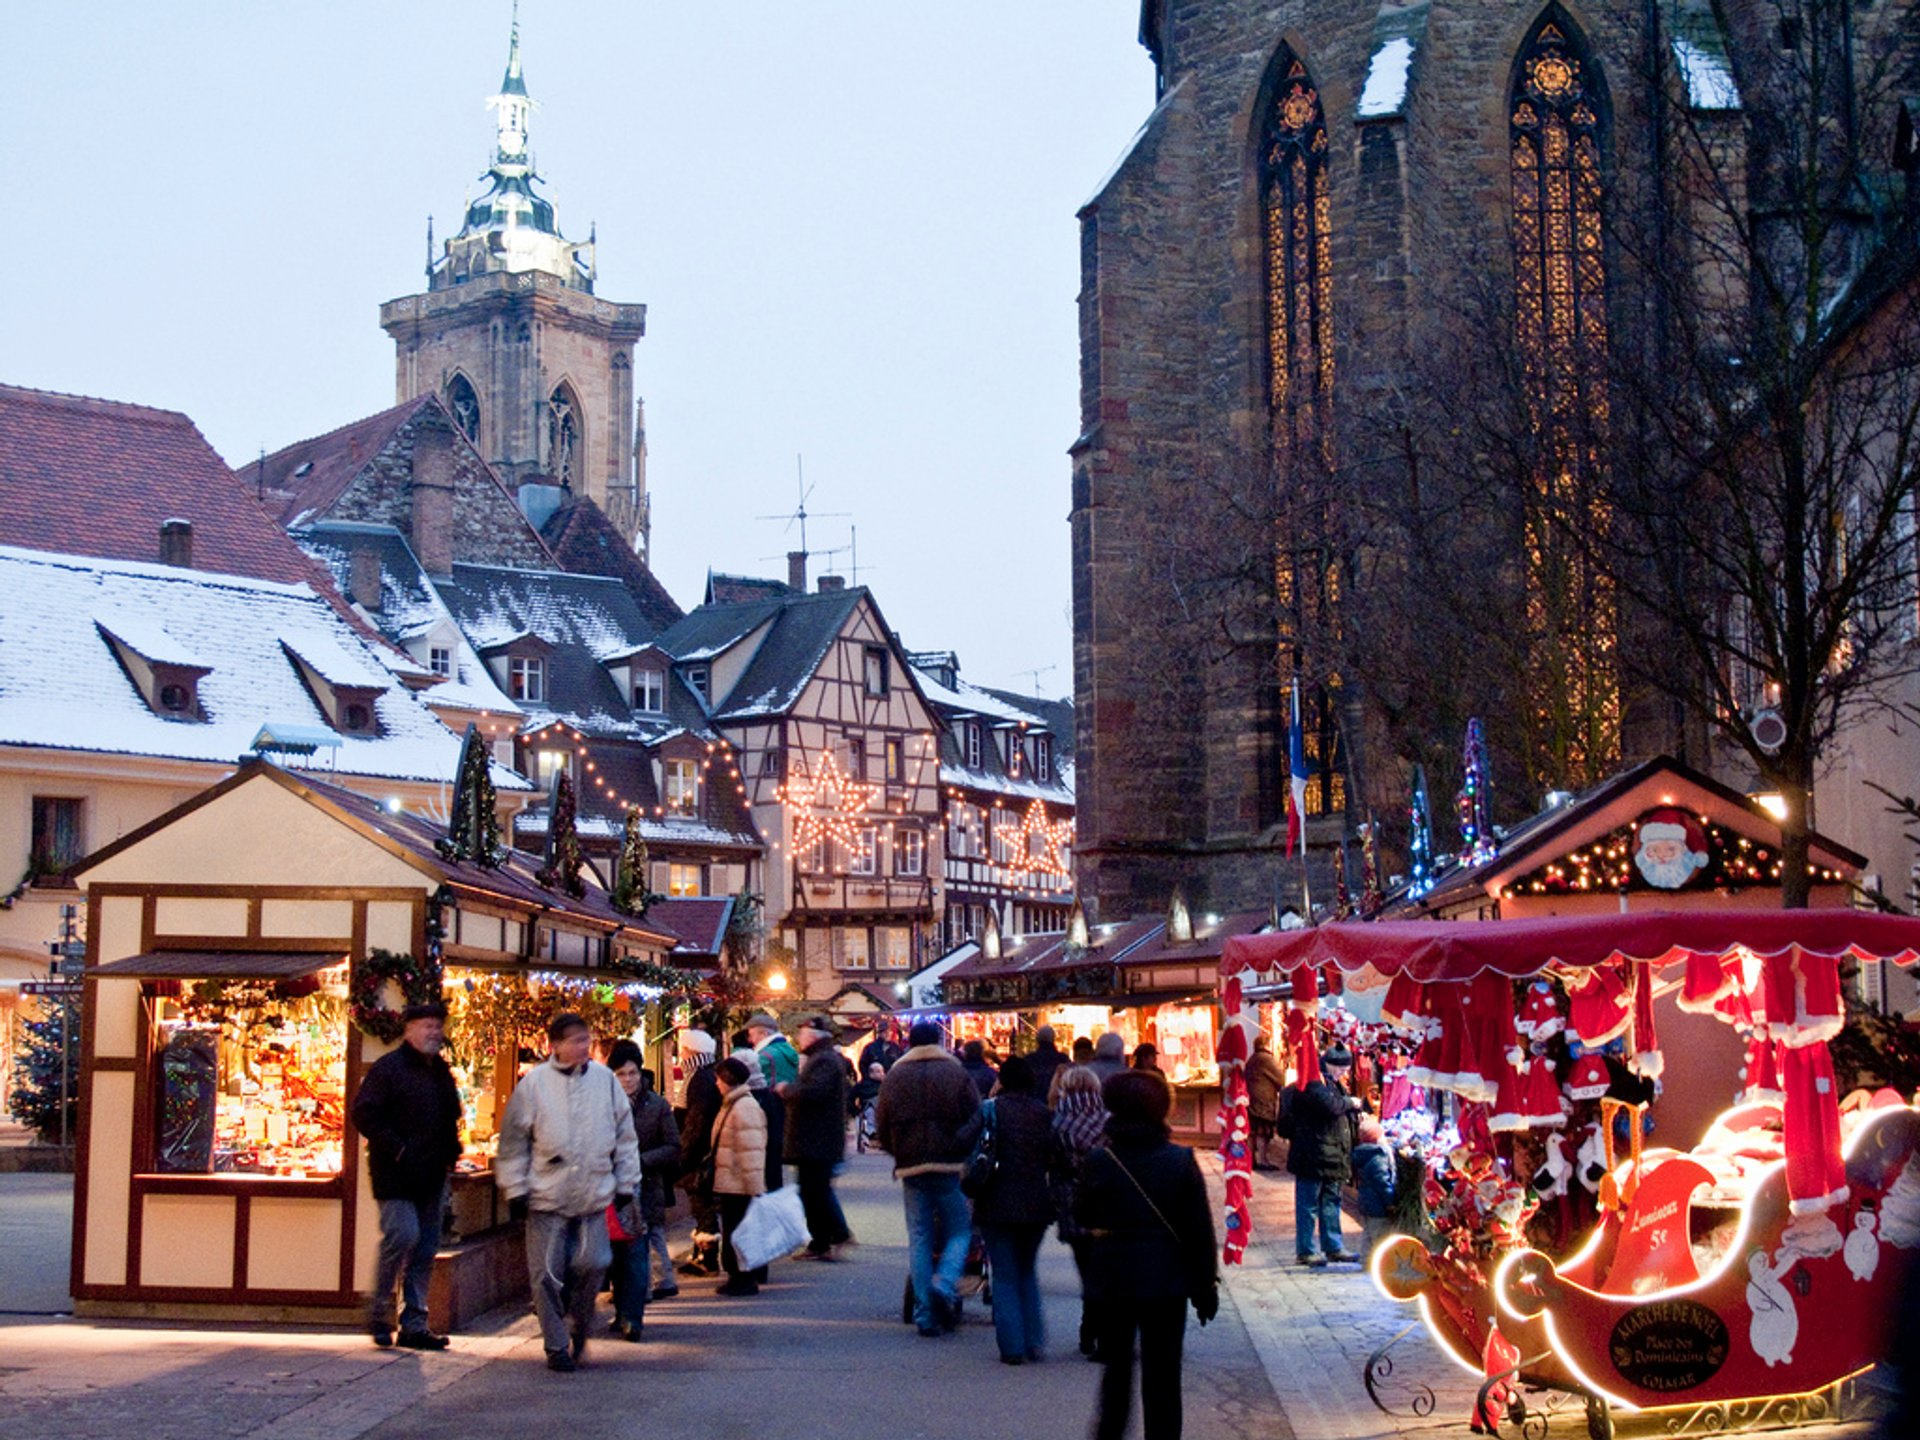 Christmas Markets (Marchés de Noël) in France 2019 - Best Time